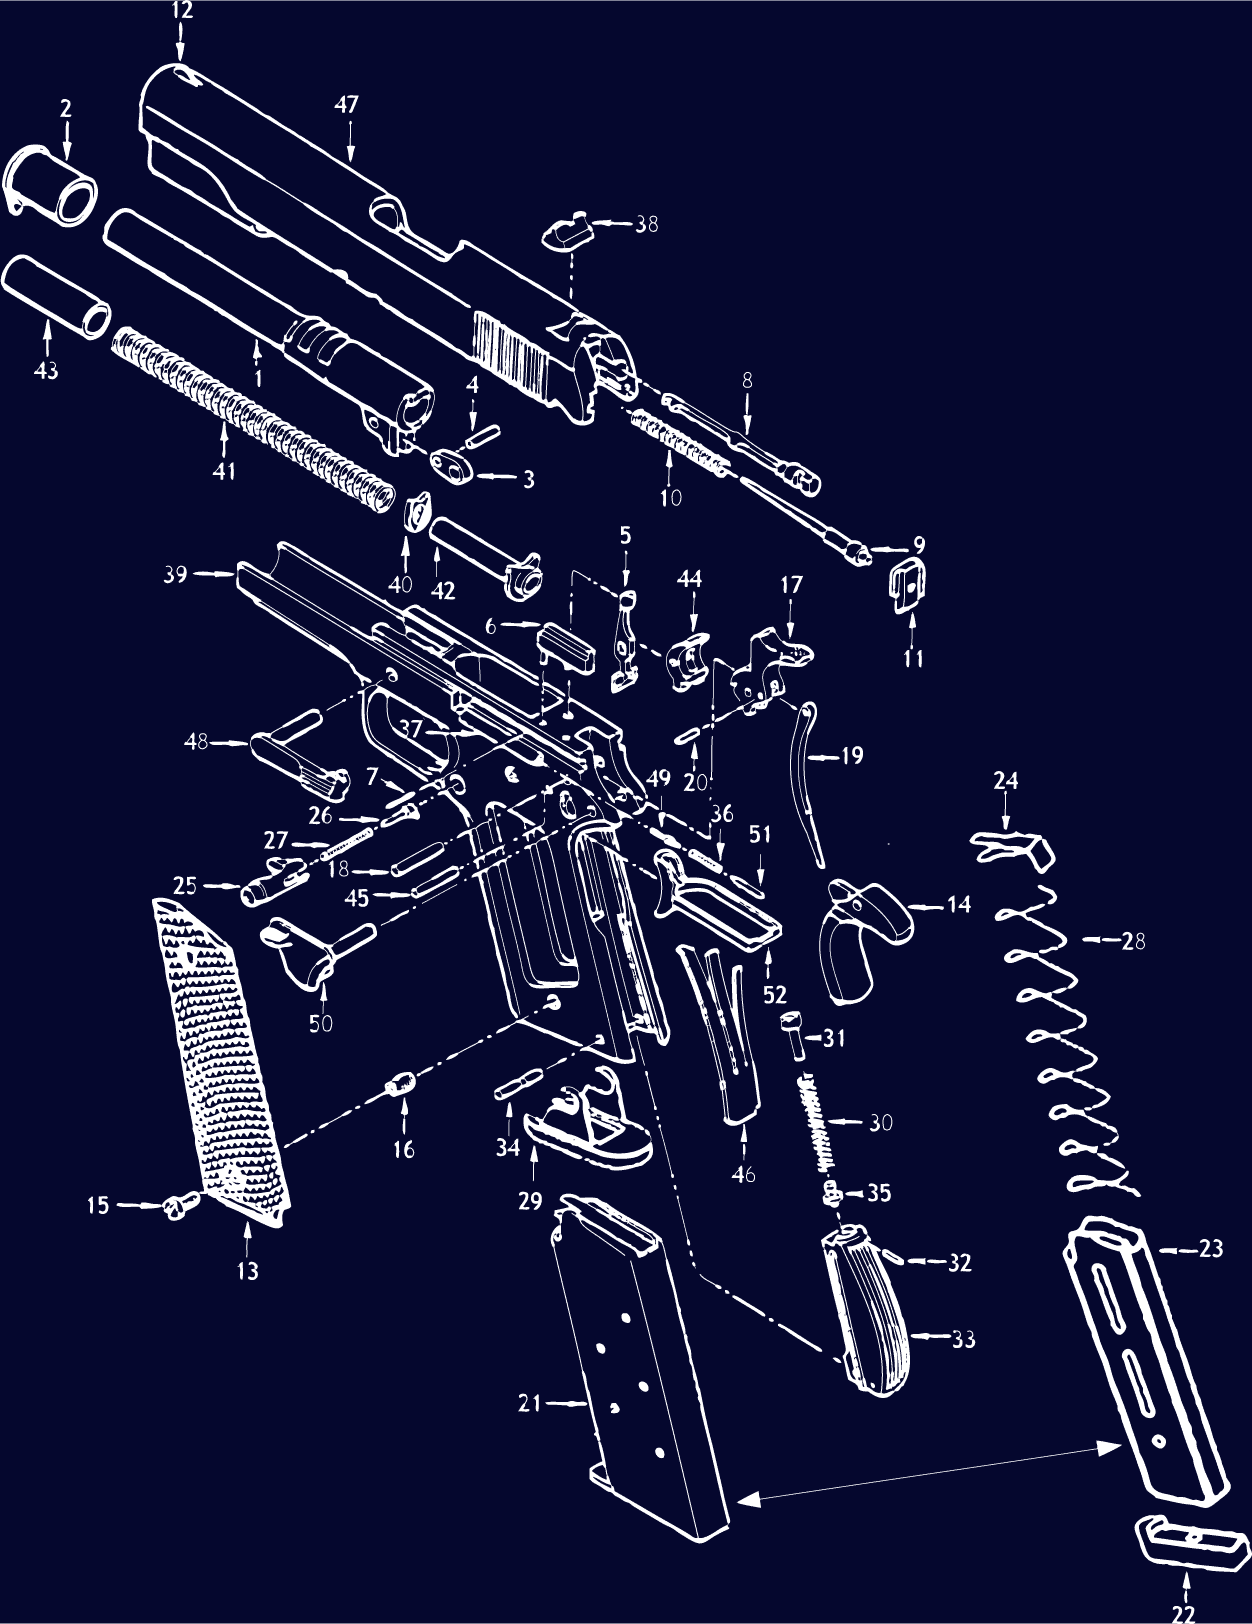 click a part: 1911 schematic